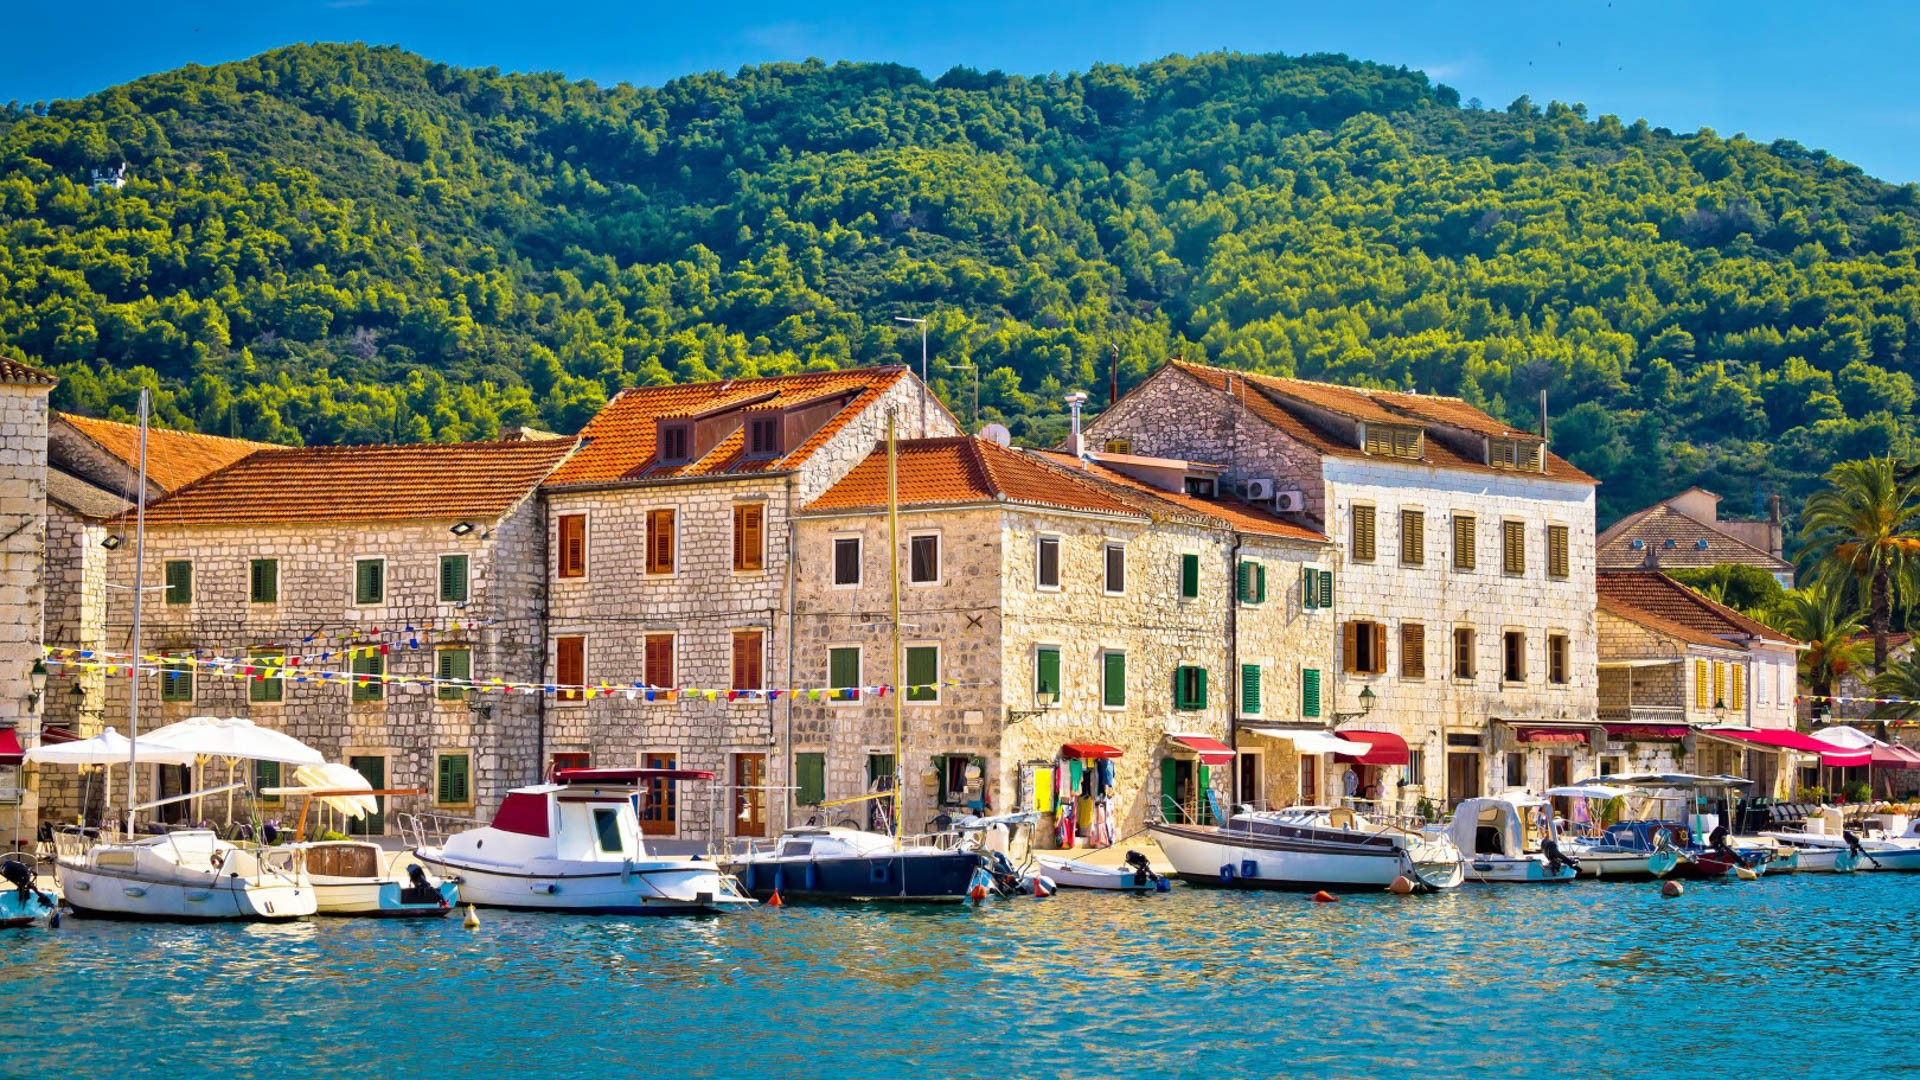 Stari Grad - Adriatic Sea | Croatia Cruise Croatia Cruise